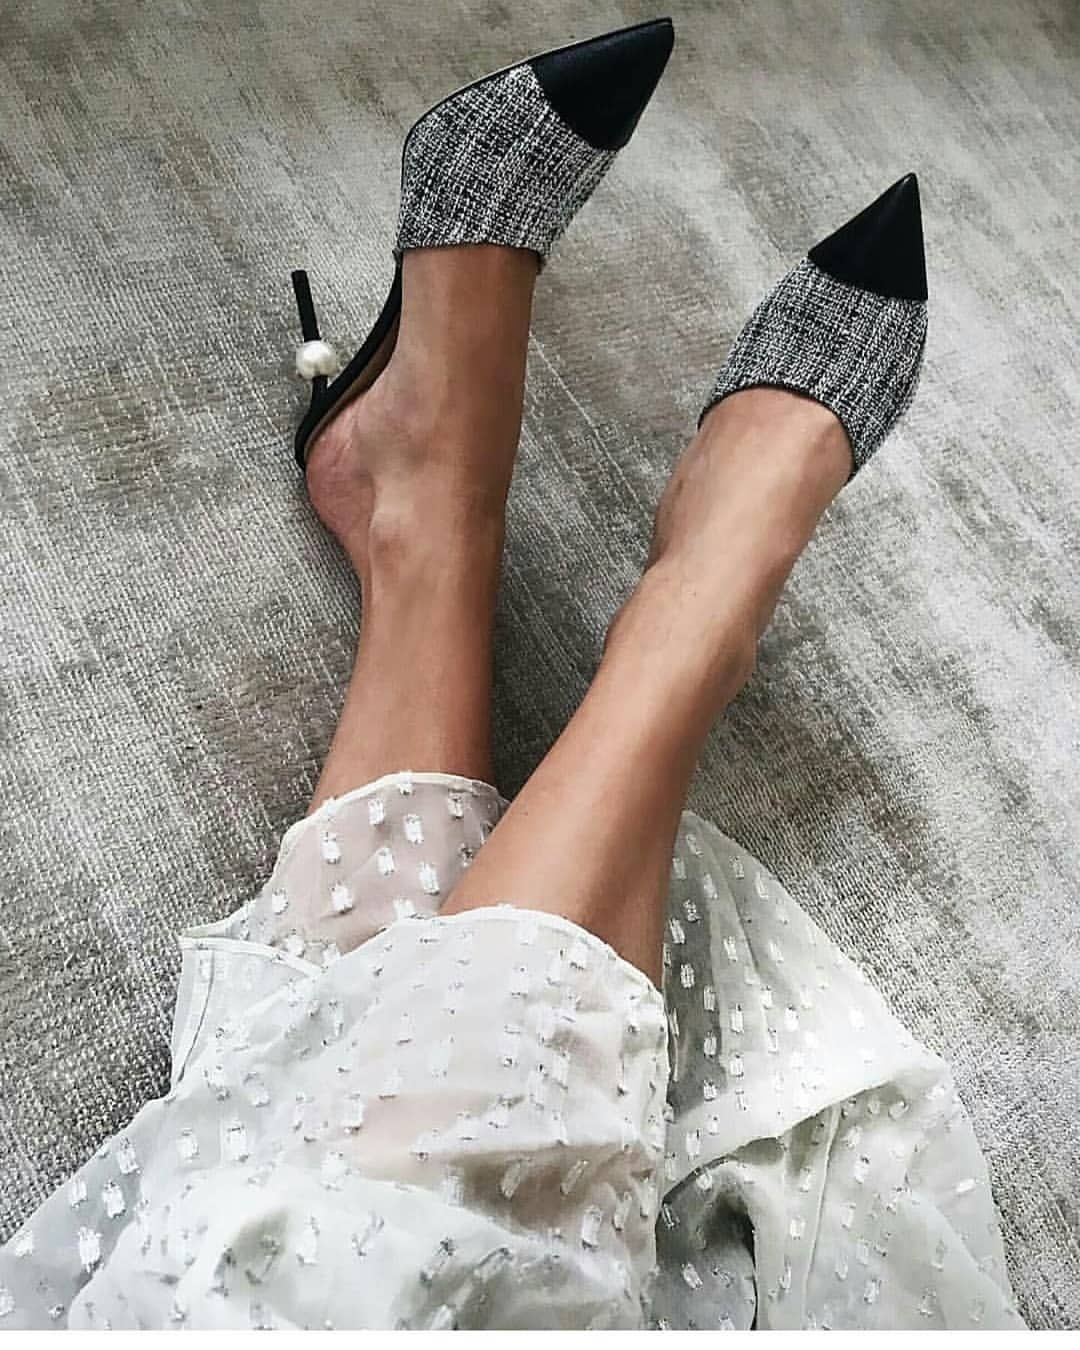 7890d71175d83 Shoe of the Month: Chanel pearl mules - 5 Inch and Up | STYLE | Chanel  pearls, Chanel mules, Fashion shoes